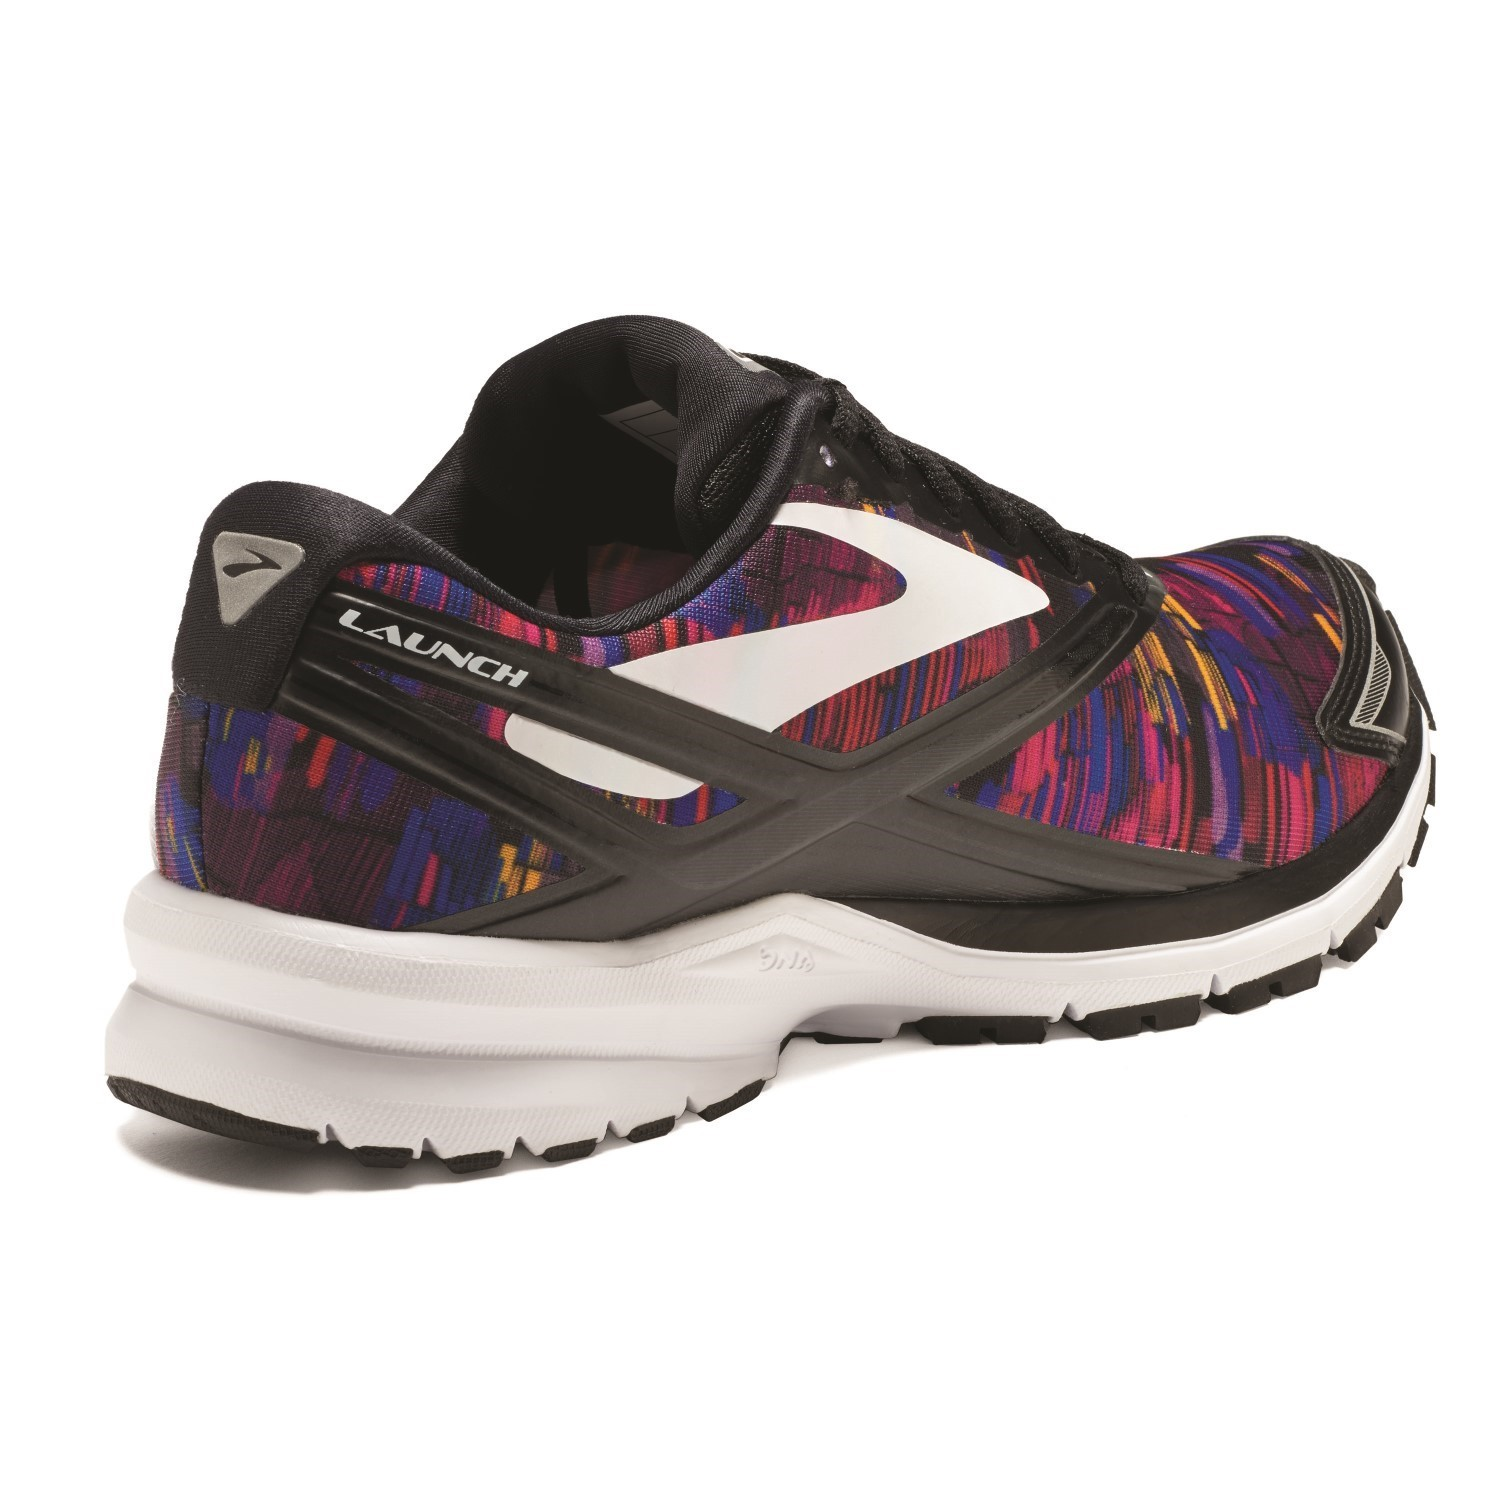 072b3d7a0cb Brooks Launch 4 Kasbah - Limited Edition - Womens Running Shoes - Kasbah  Sunset White